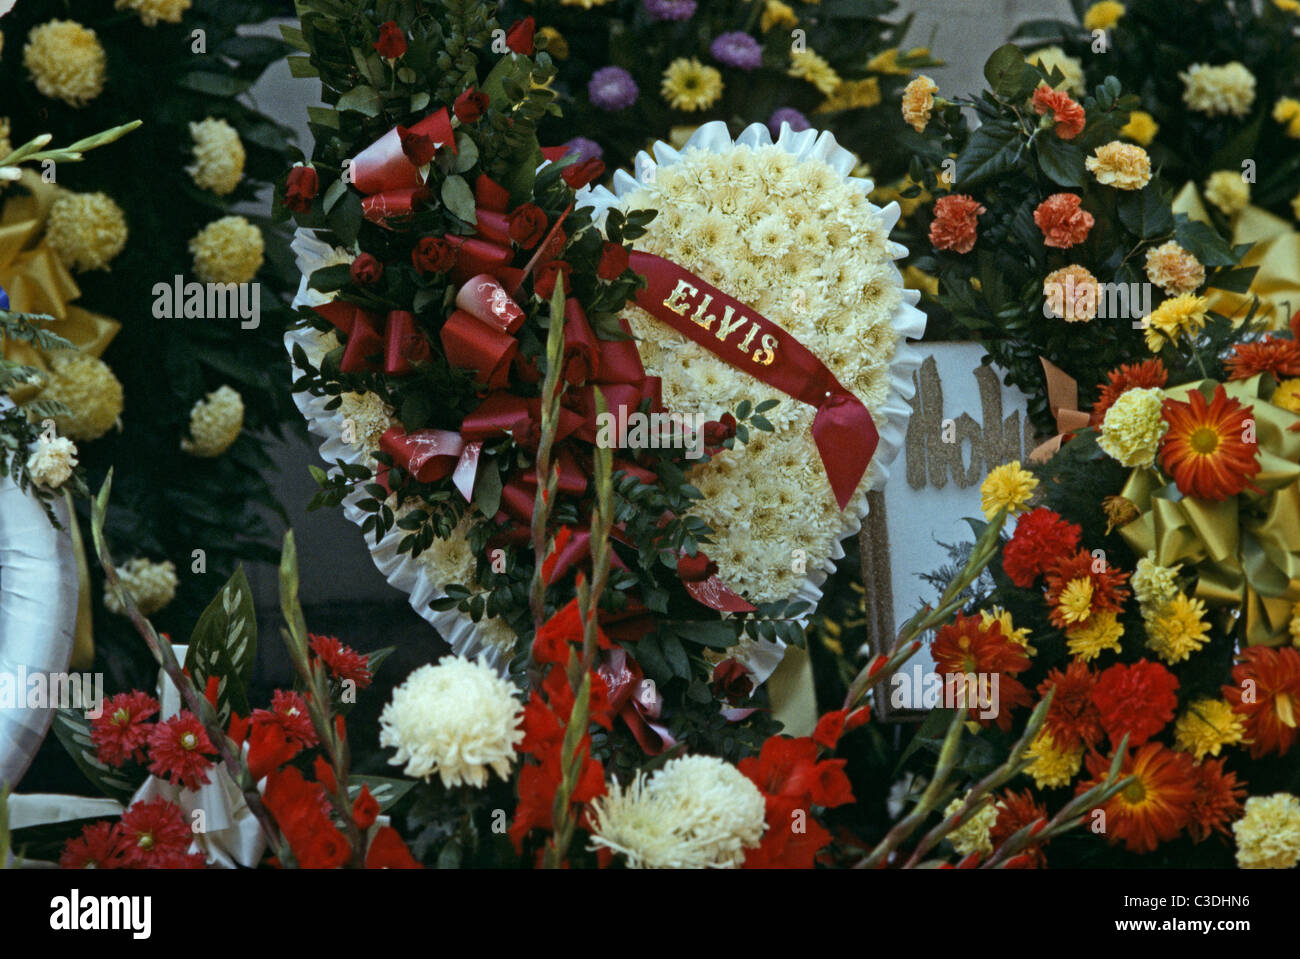 Elvis Presley Funeral Flowers Memphis Tennessee Usa Stock Photo